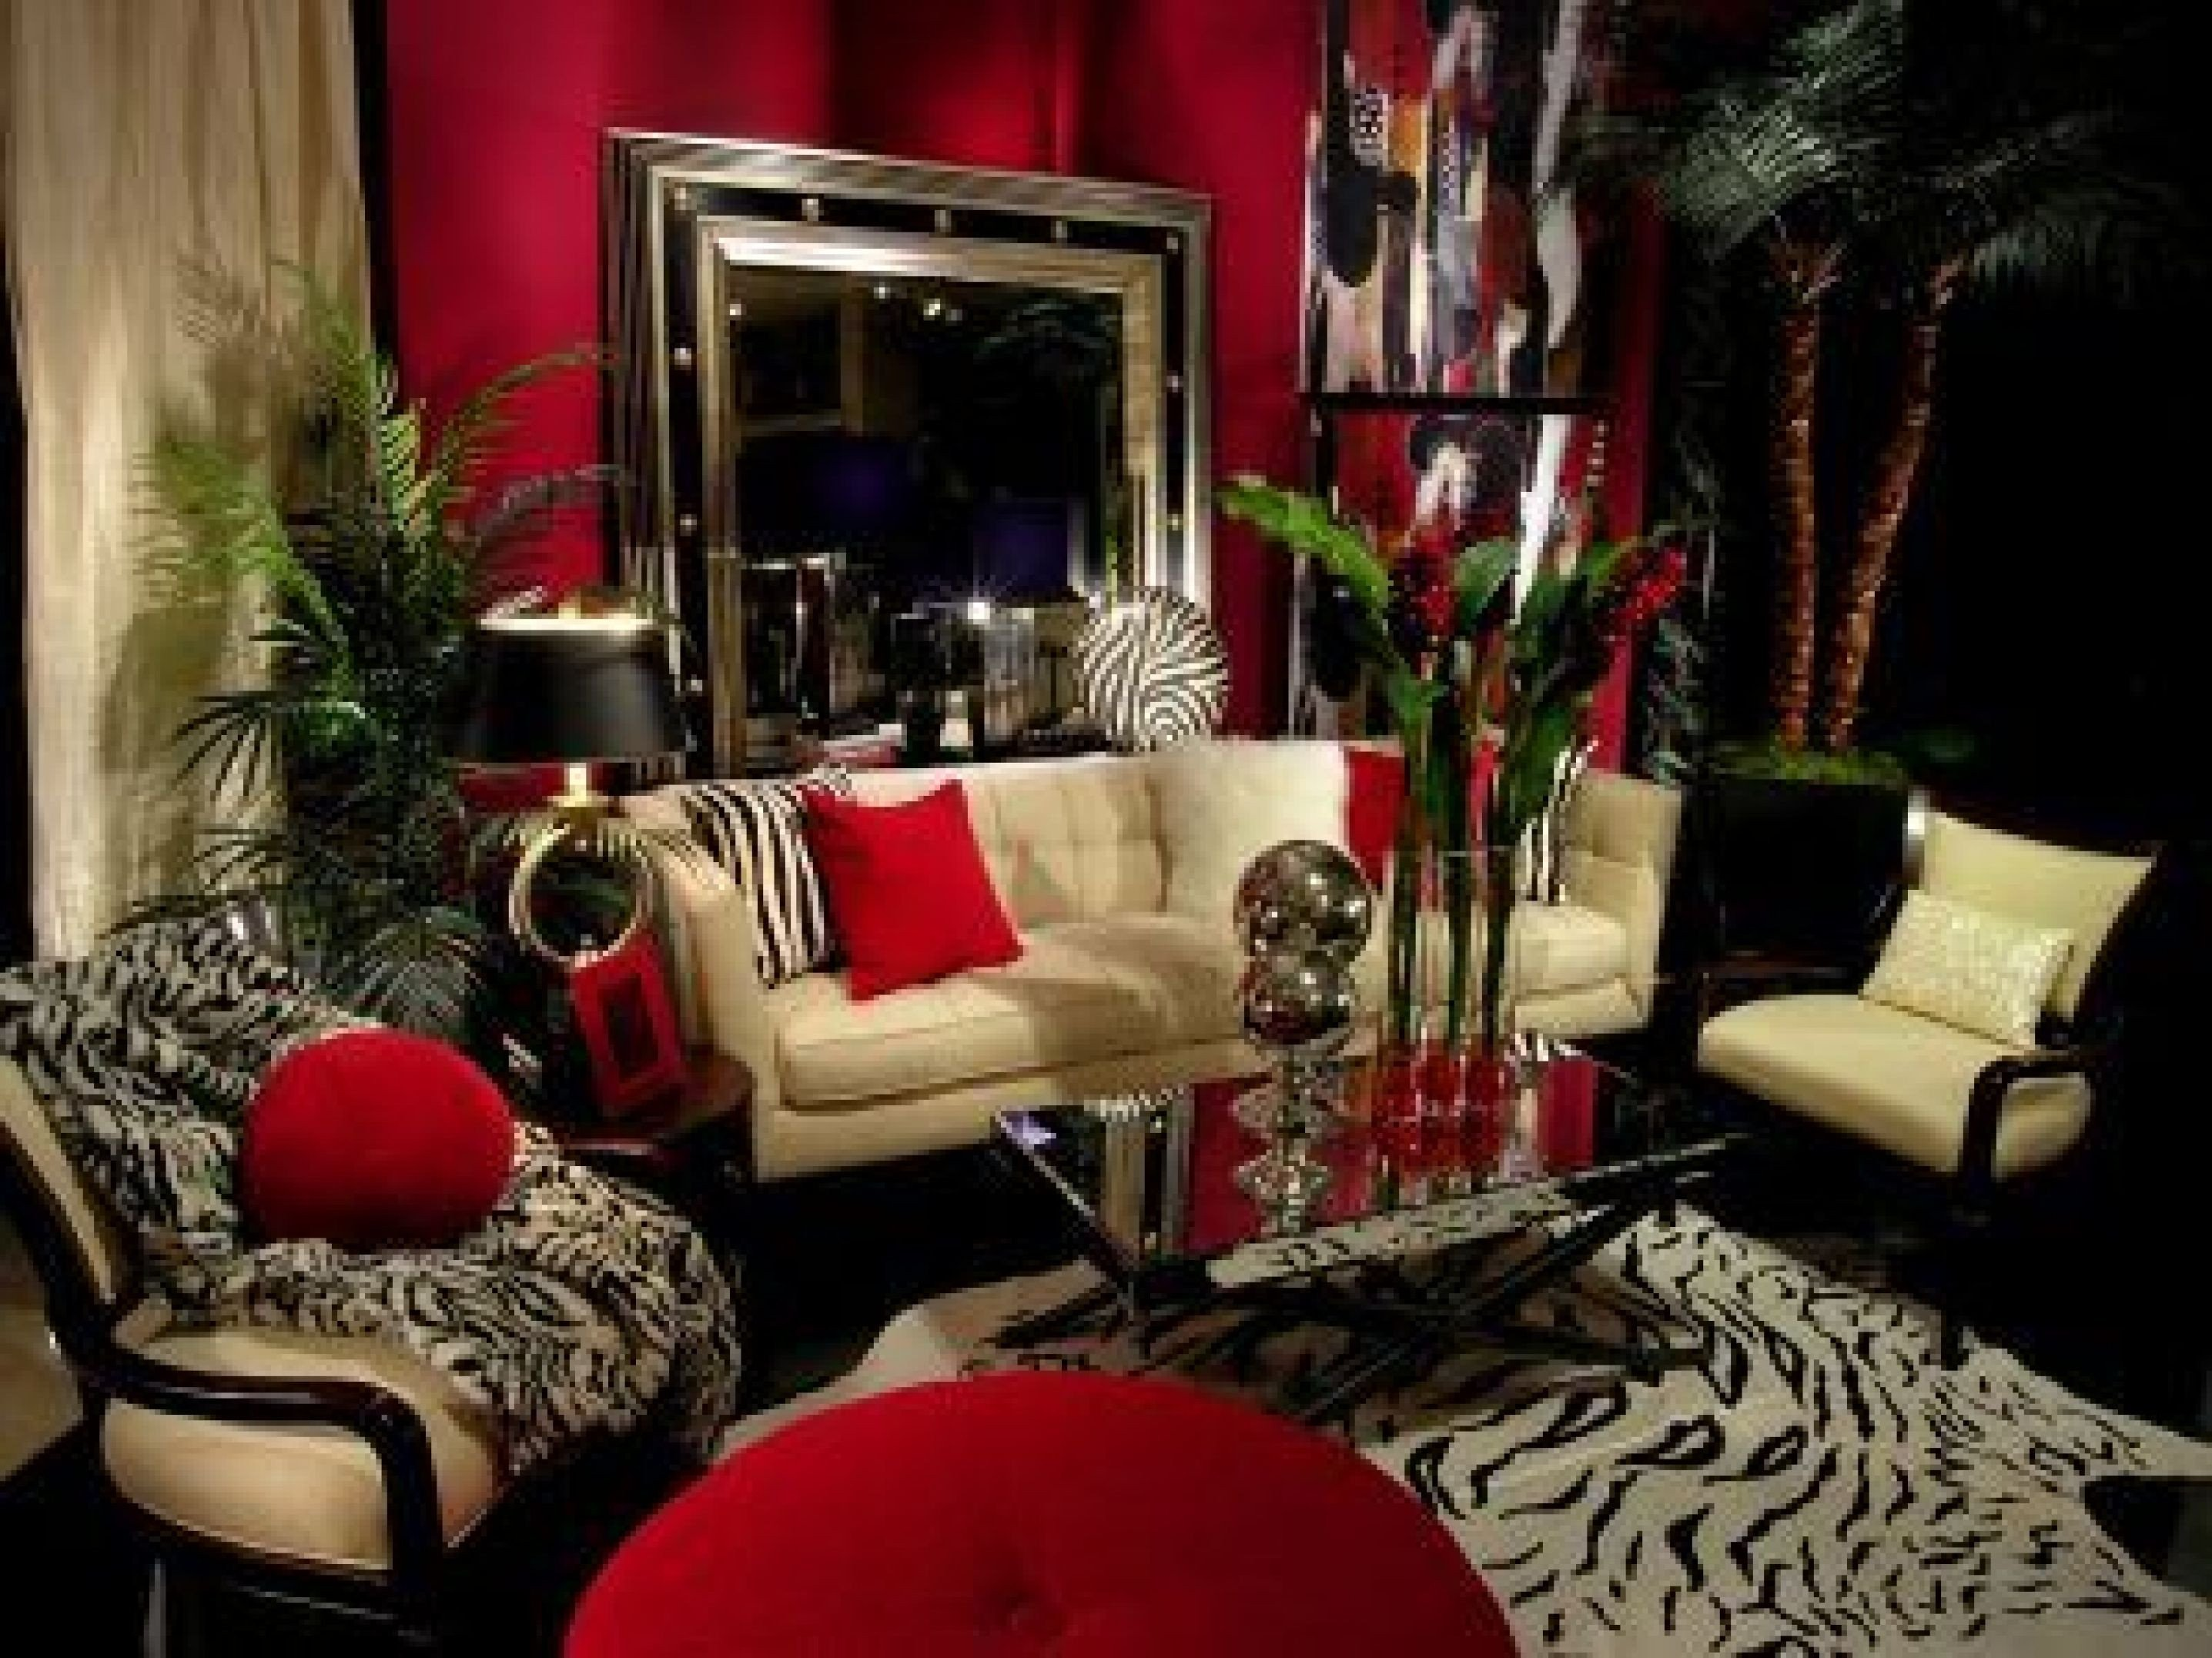 Red and Black Home Decor Awesome Black Red Bedroom Jungle Google Search Home Decor Ideas